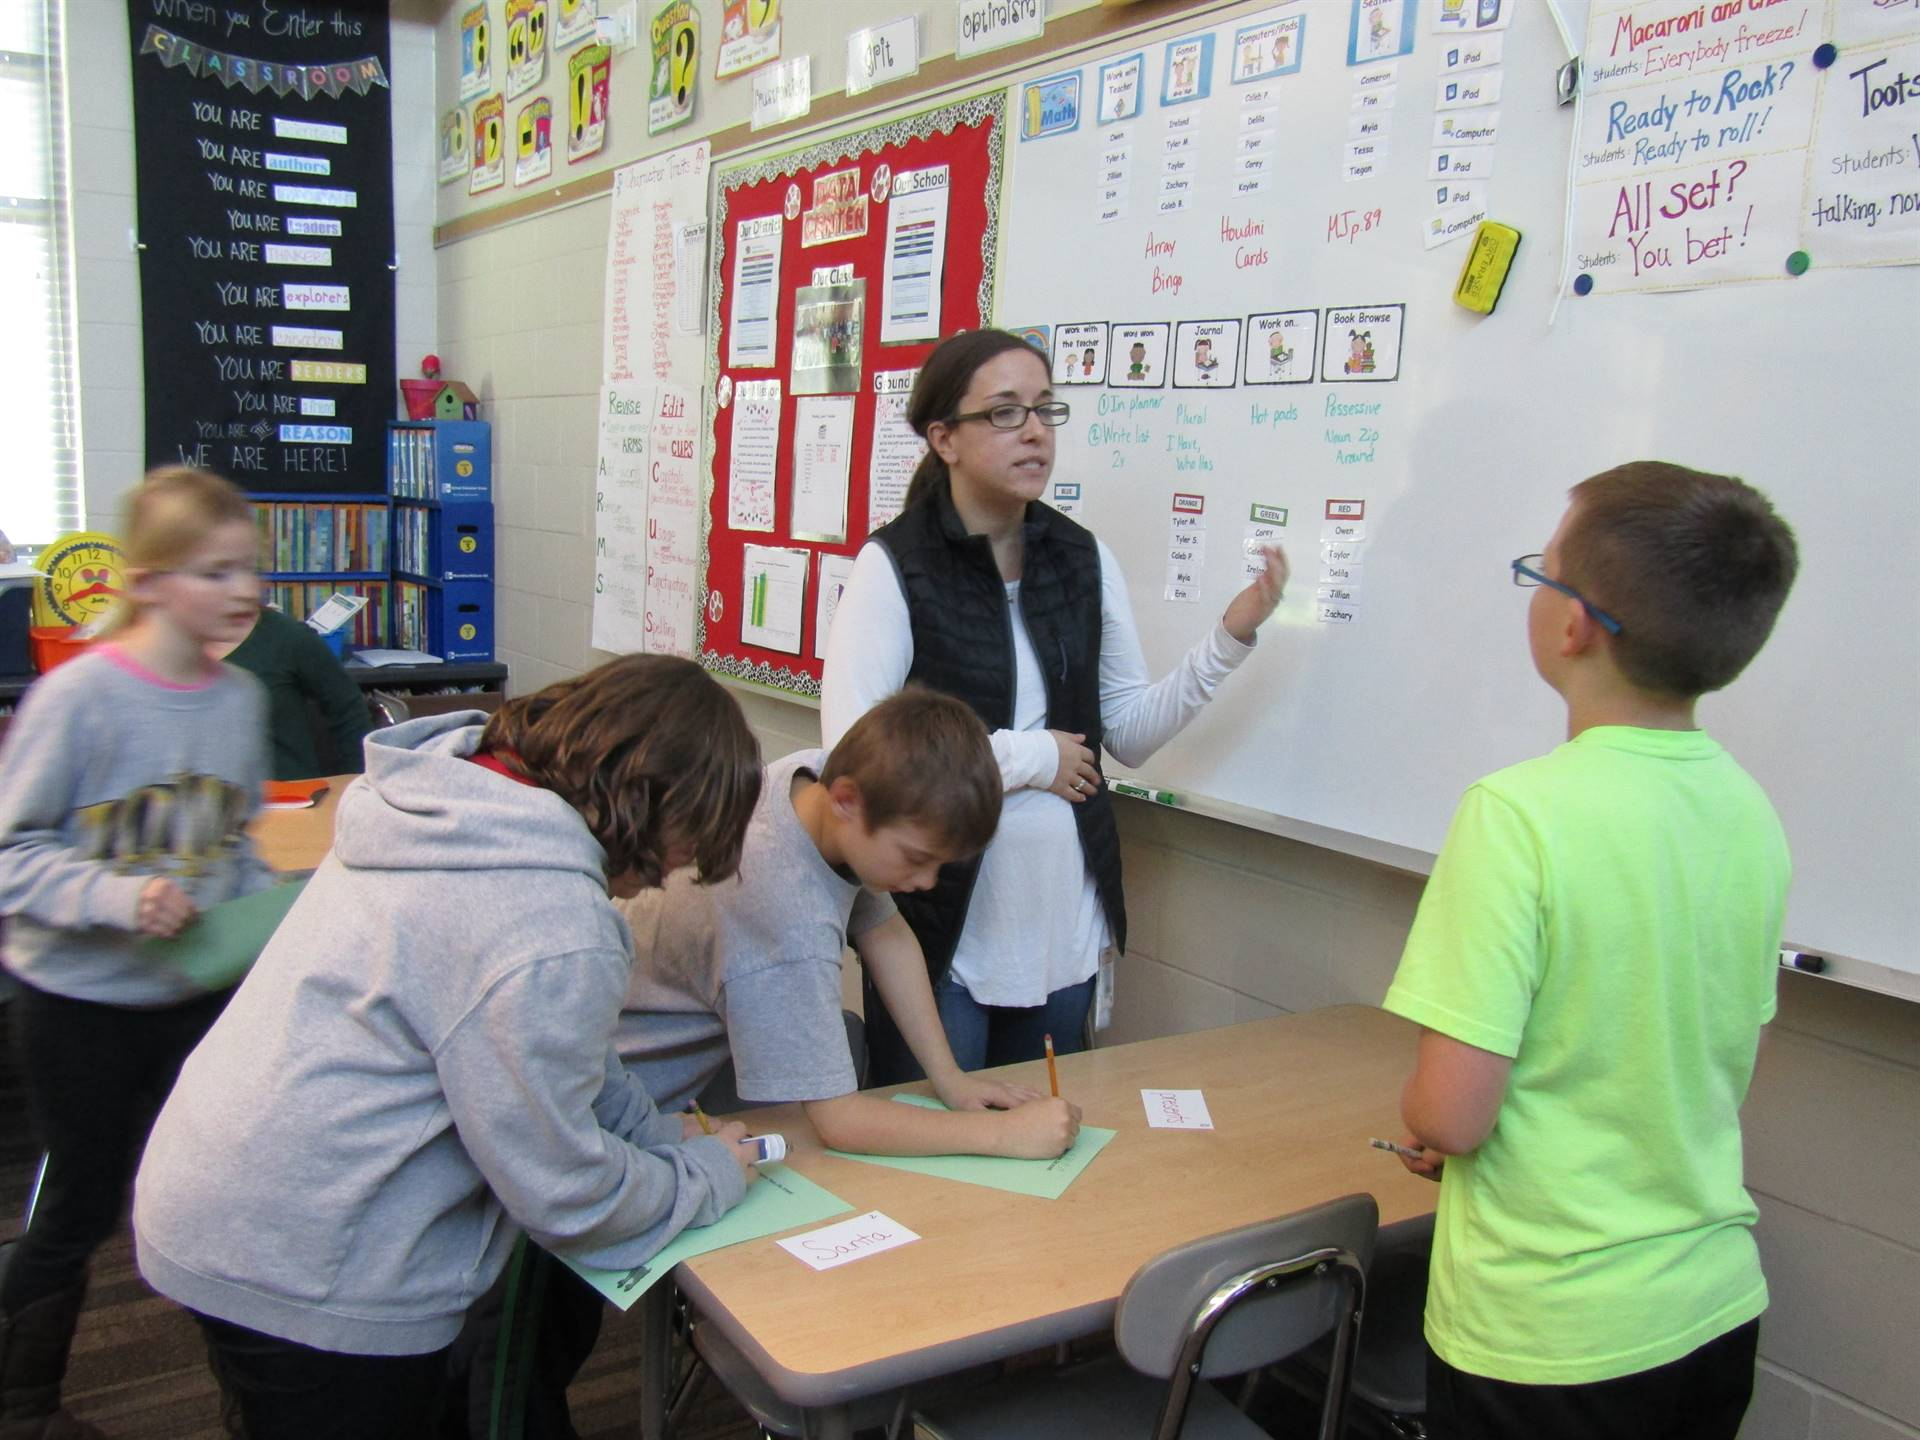 A paraprofessional working with students